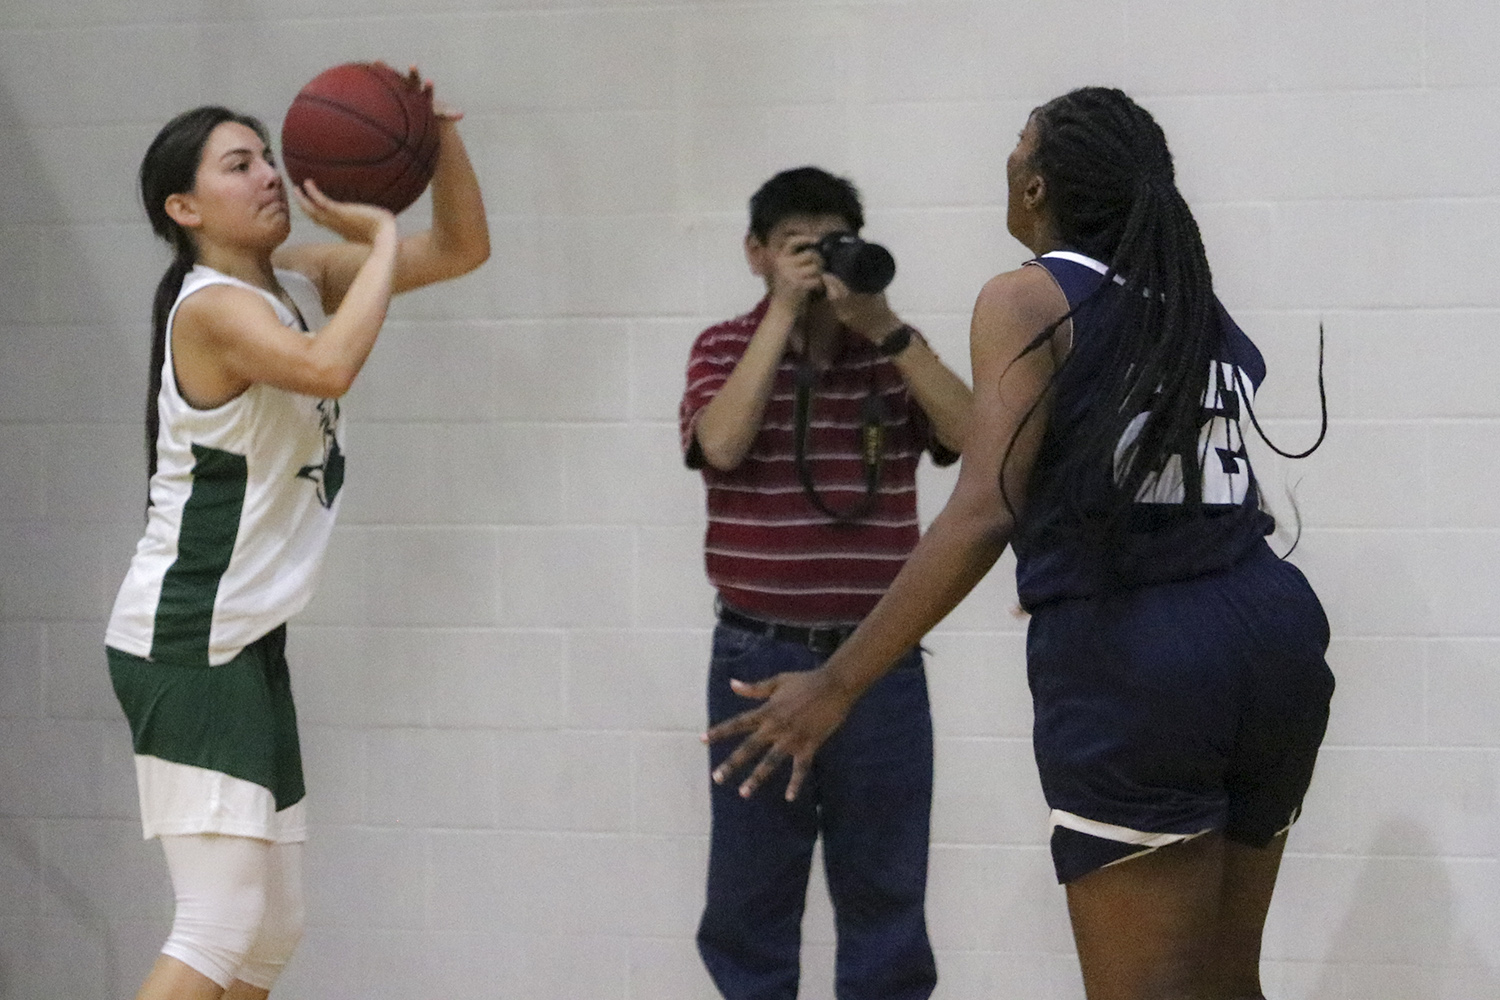 Gina Ballesteros shoots from the corner during a Lady Saints scrimmage. The freshman guard from Ulyssess is one of the few local Kansas athletes playing at SCCC.